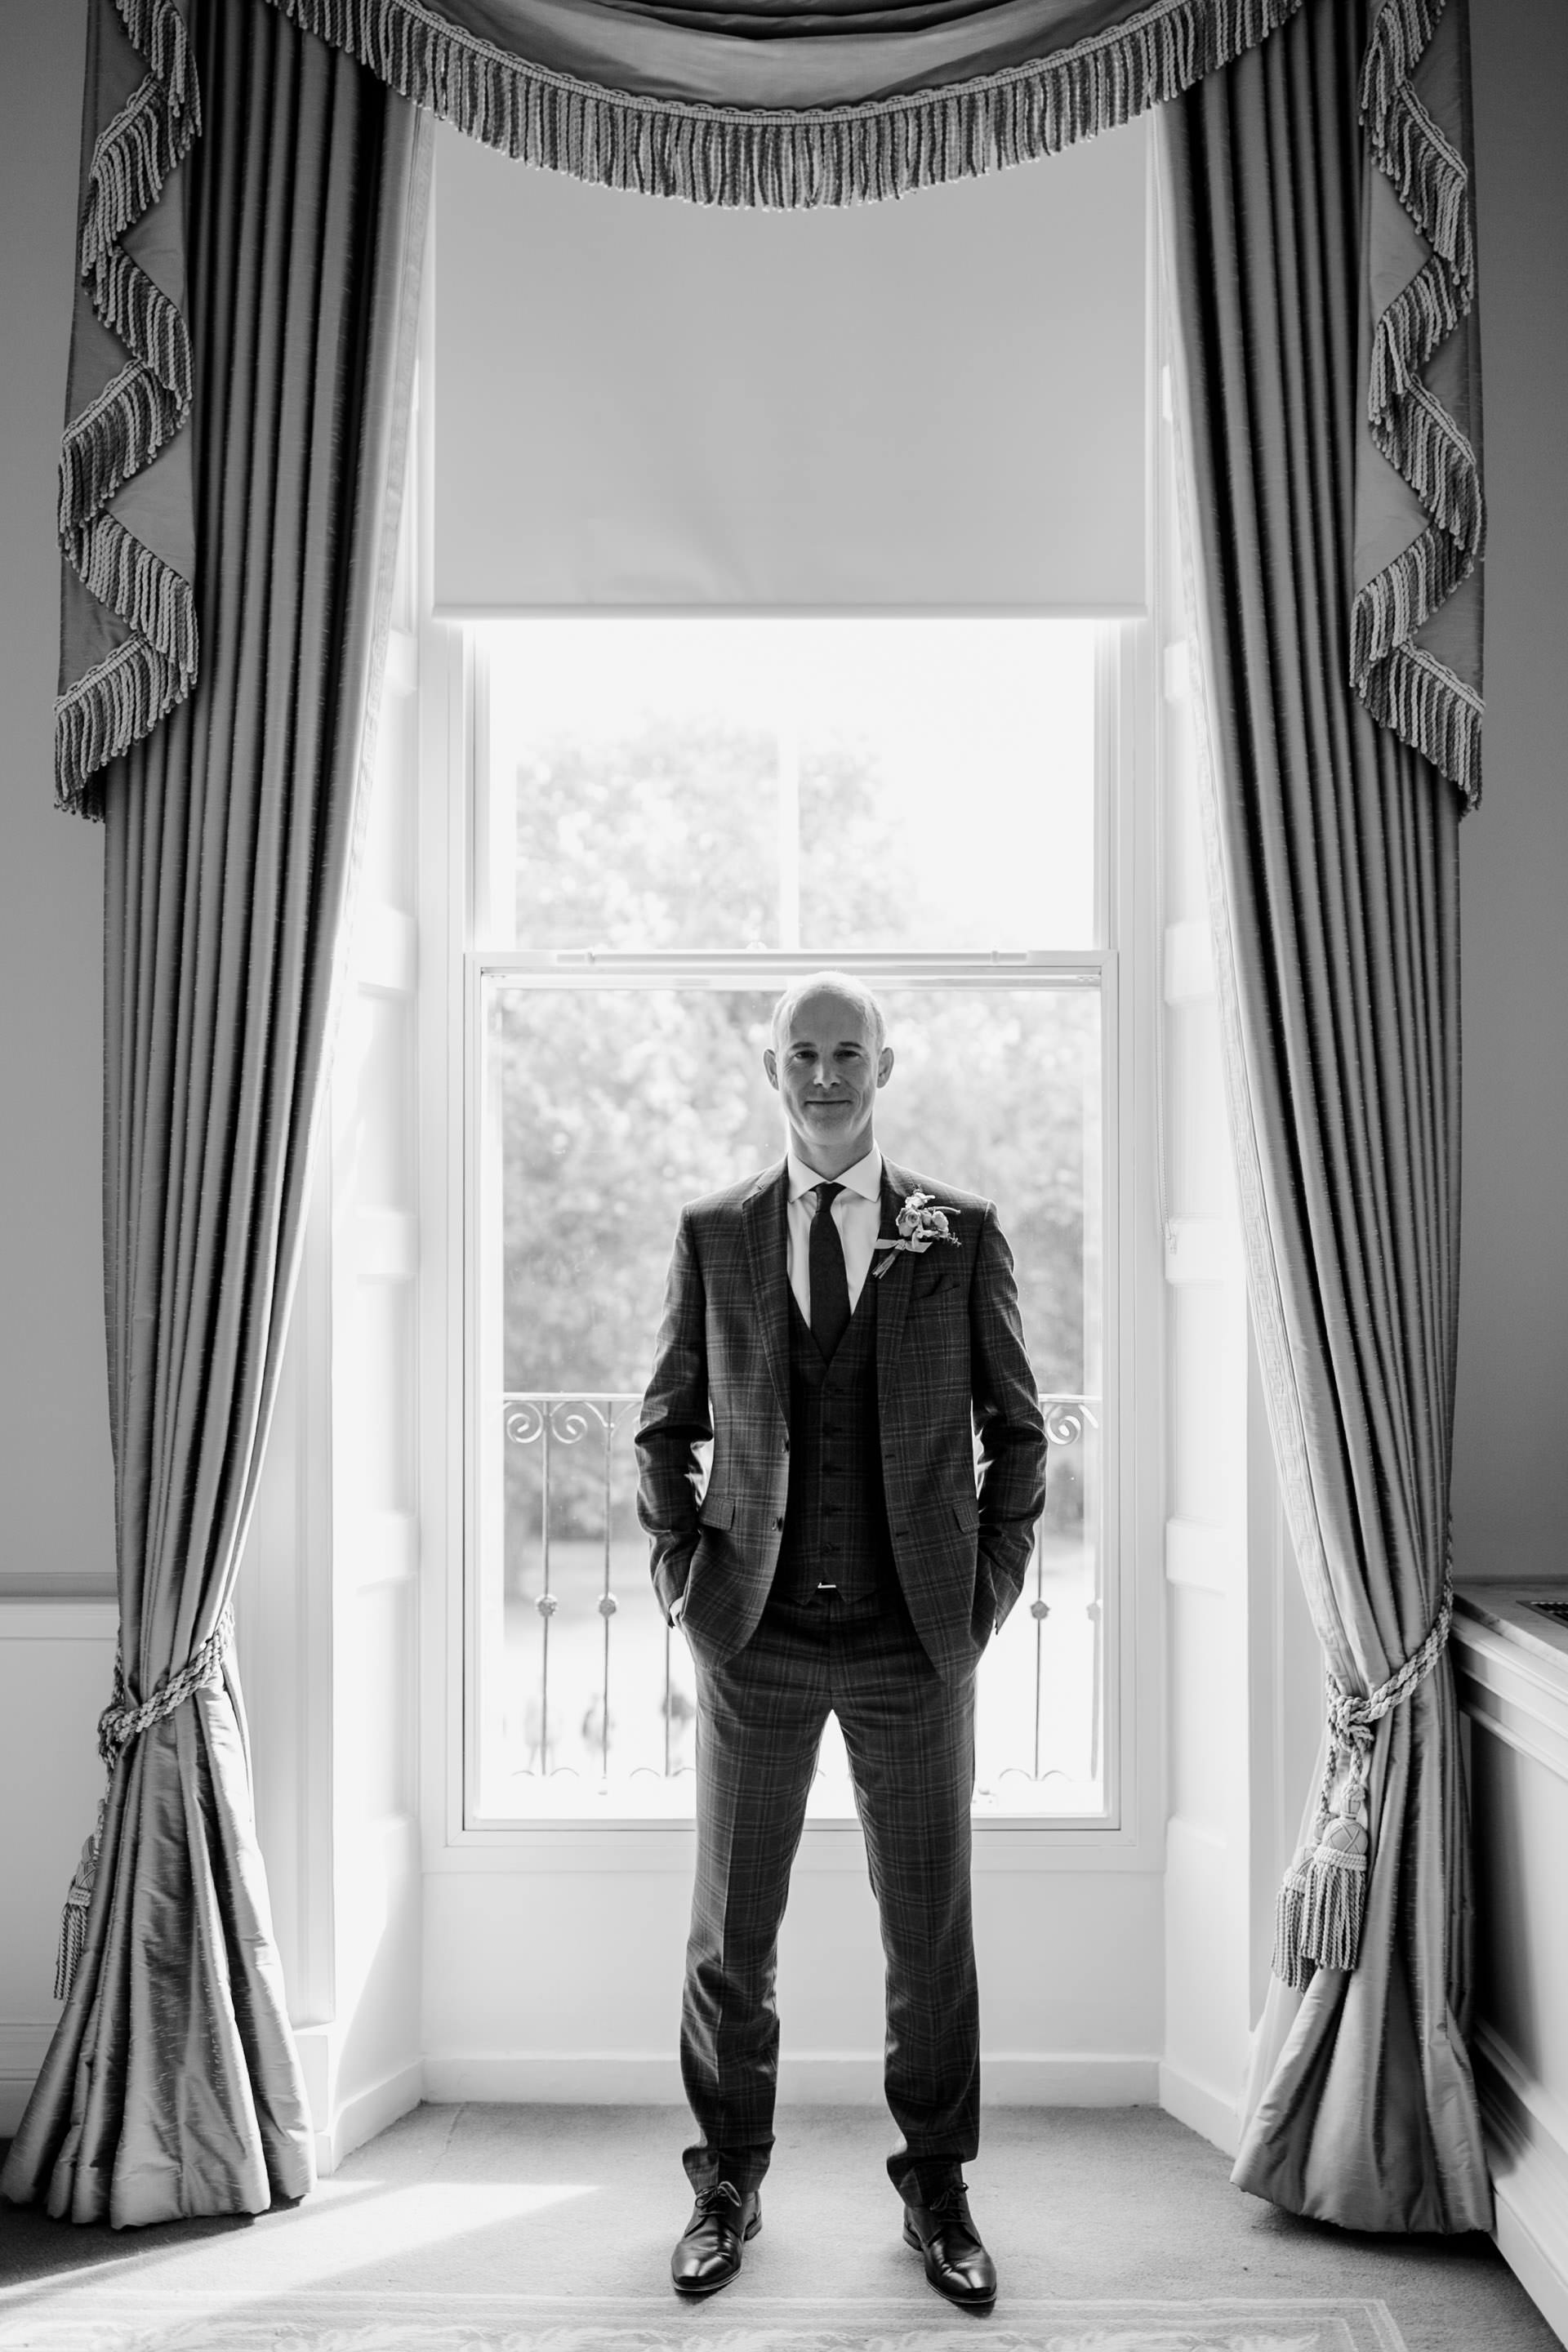 s&r_the_shelbourne_hotel_wedding_photographer_livia_figueiredo_13.jpg